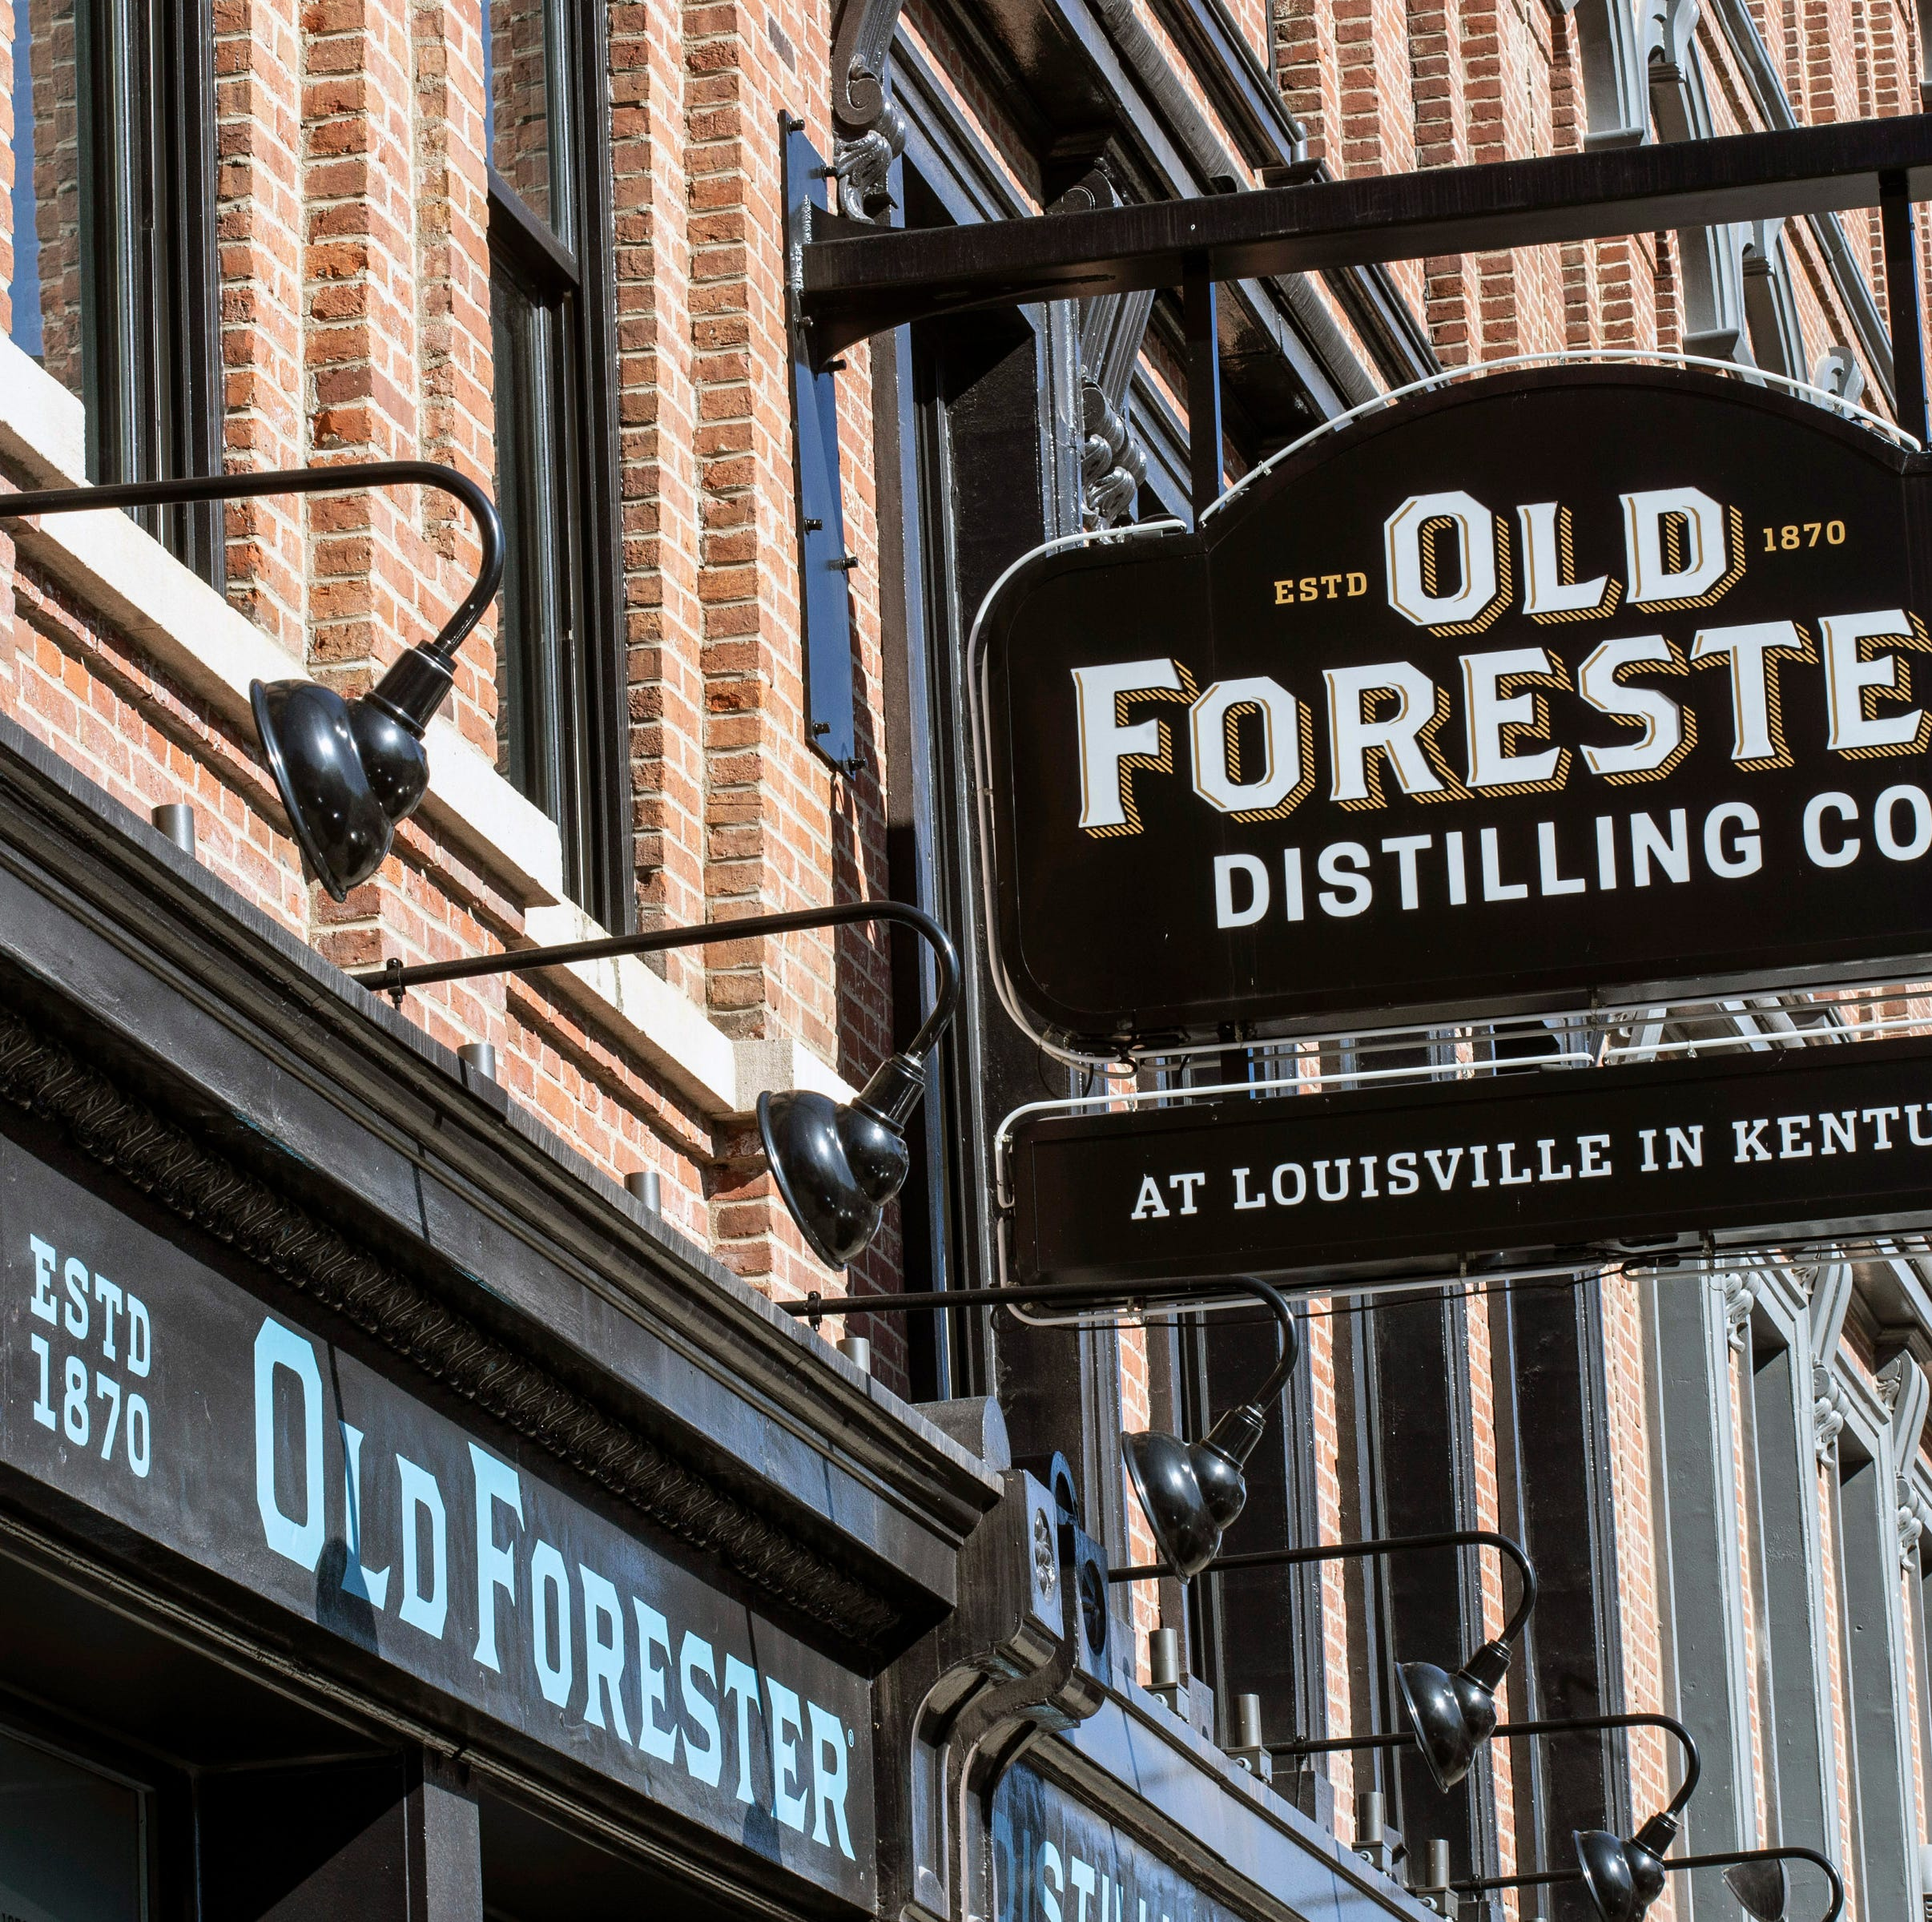 A new cocktail bar opens next week at the Old Forester in Louisville